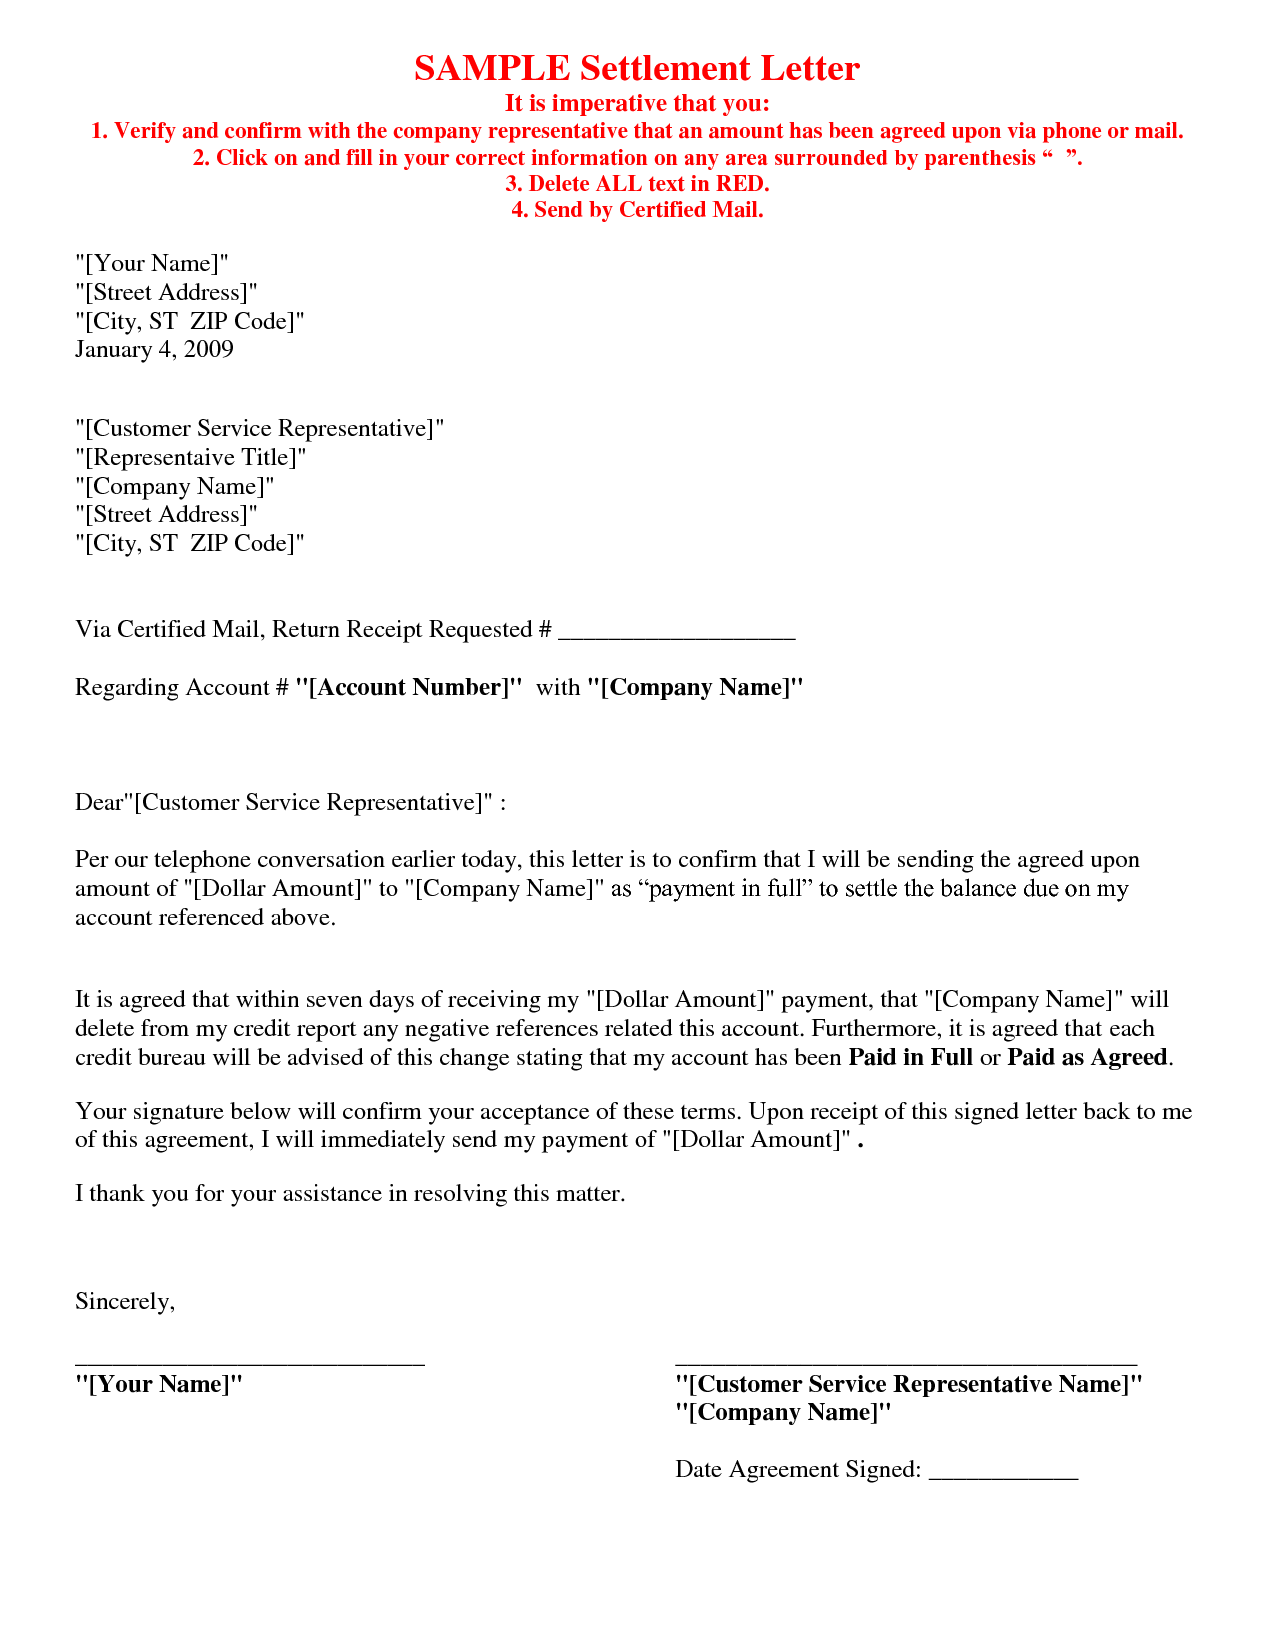 Picture 5 of 17 debt settlement agreement letter sample letter agreement samples template learnhowtoloseweight picture debt settlement sample throughout best free home design idea inspiration platinumwayz